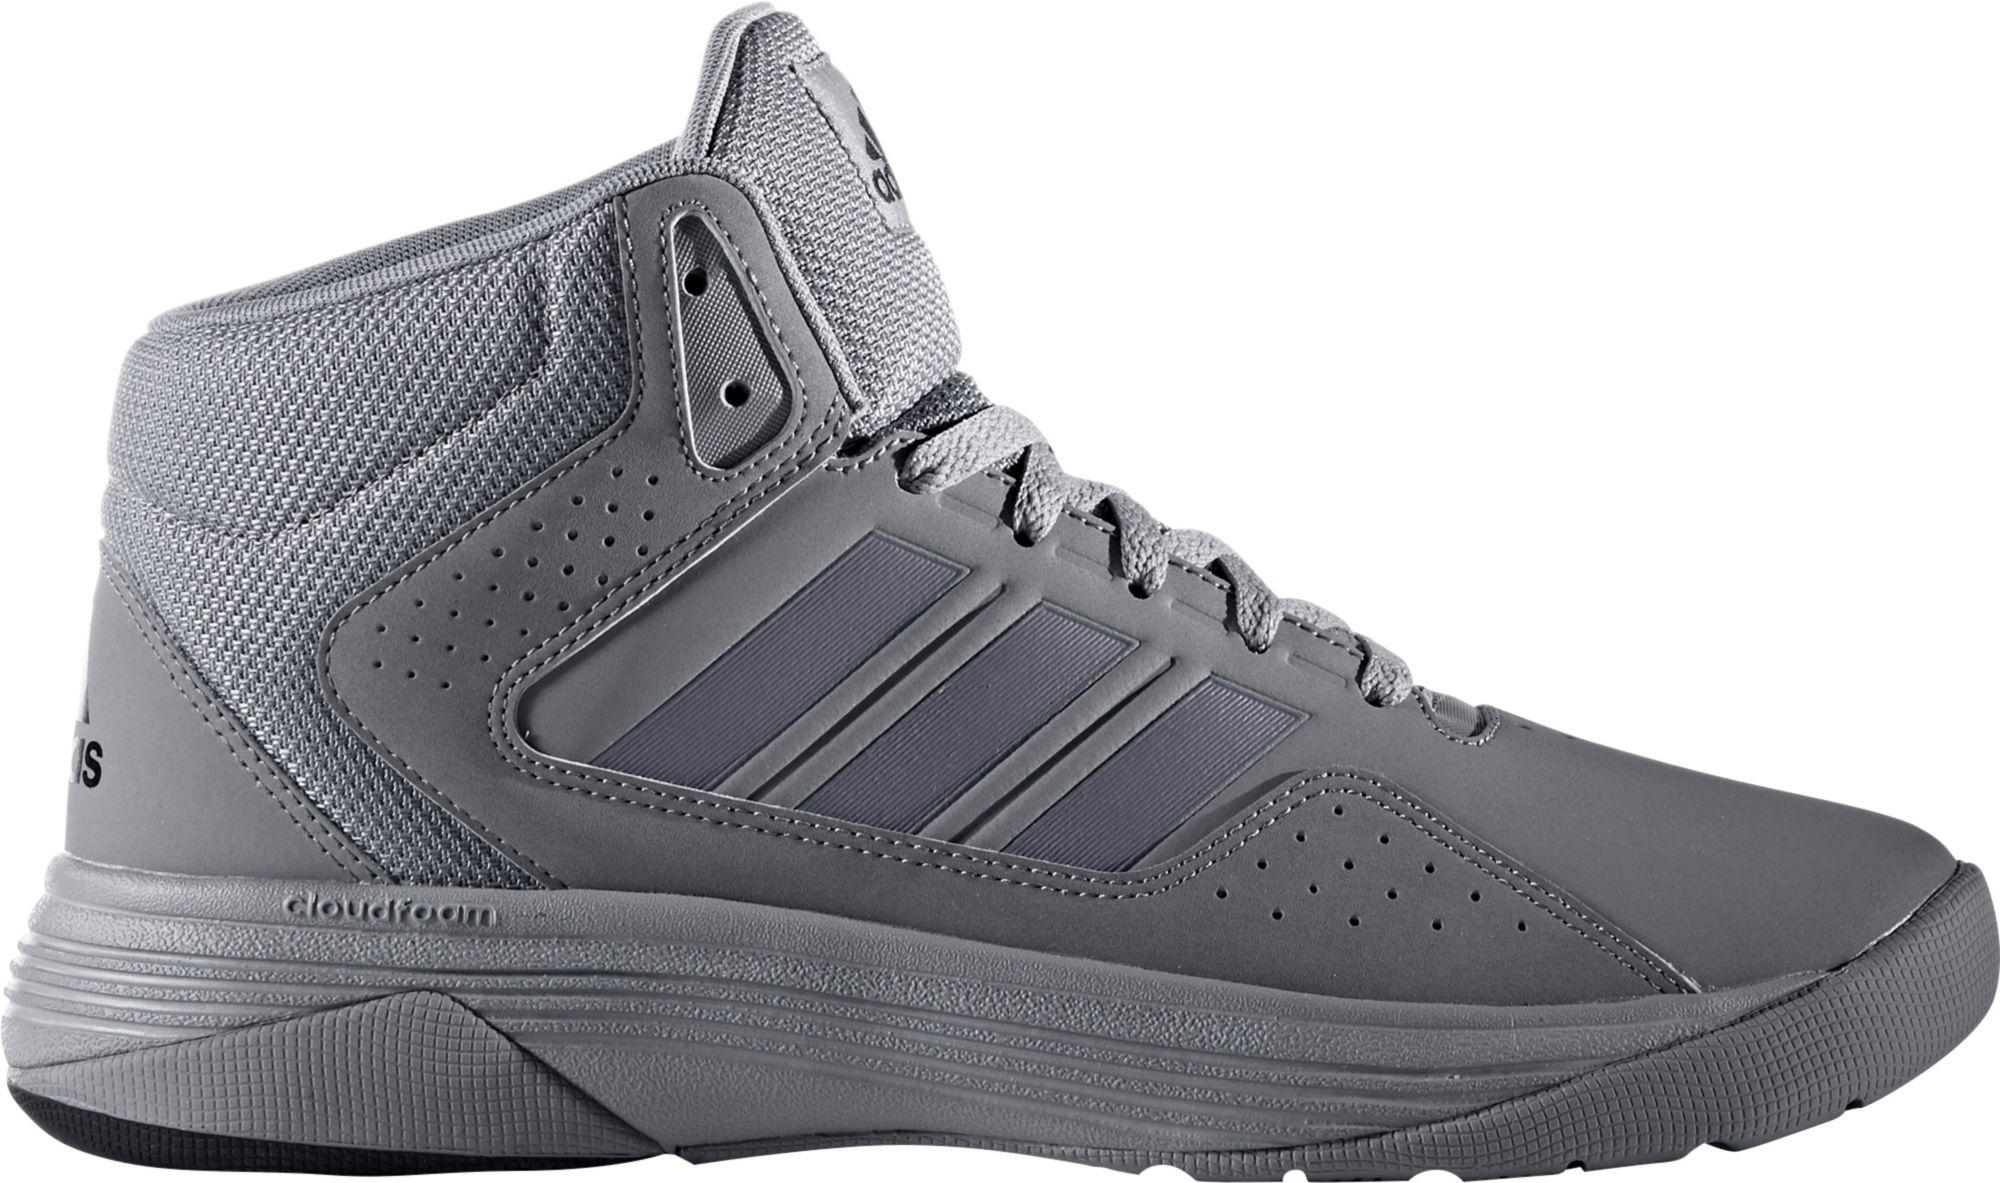 a9591cac0b7e Lyst - adidas Neo Cloudfoam Ilation Mid Basketball Shoes in Gray for Men